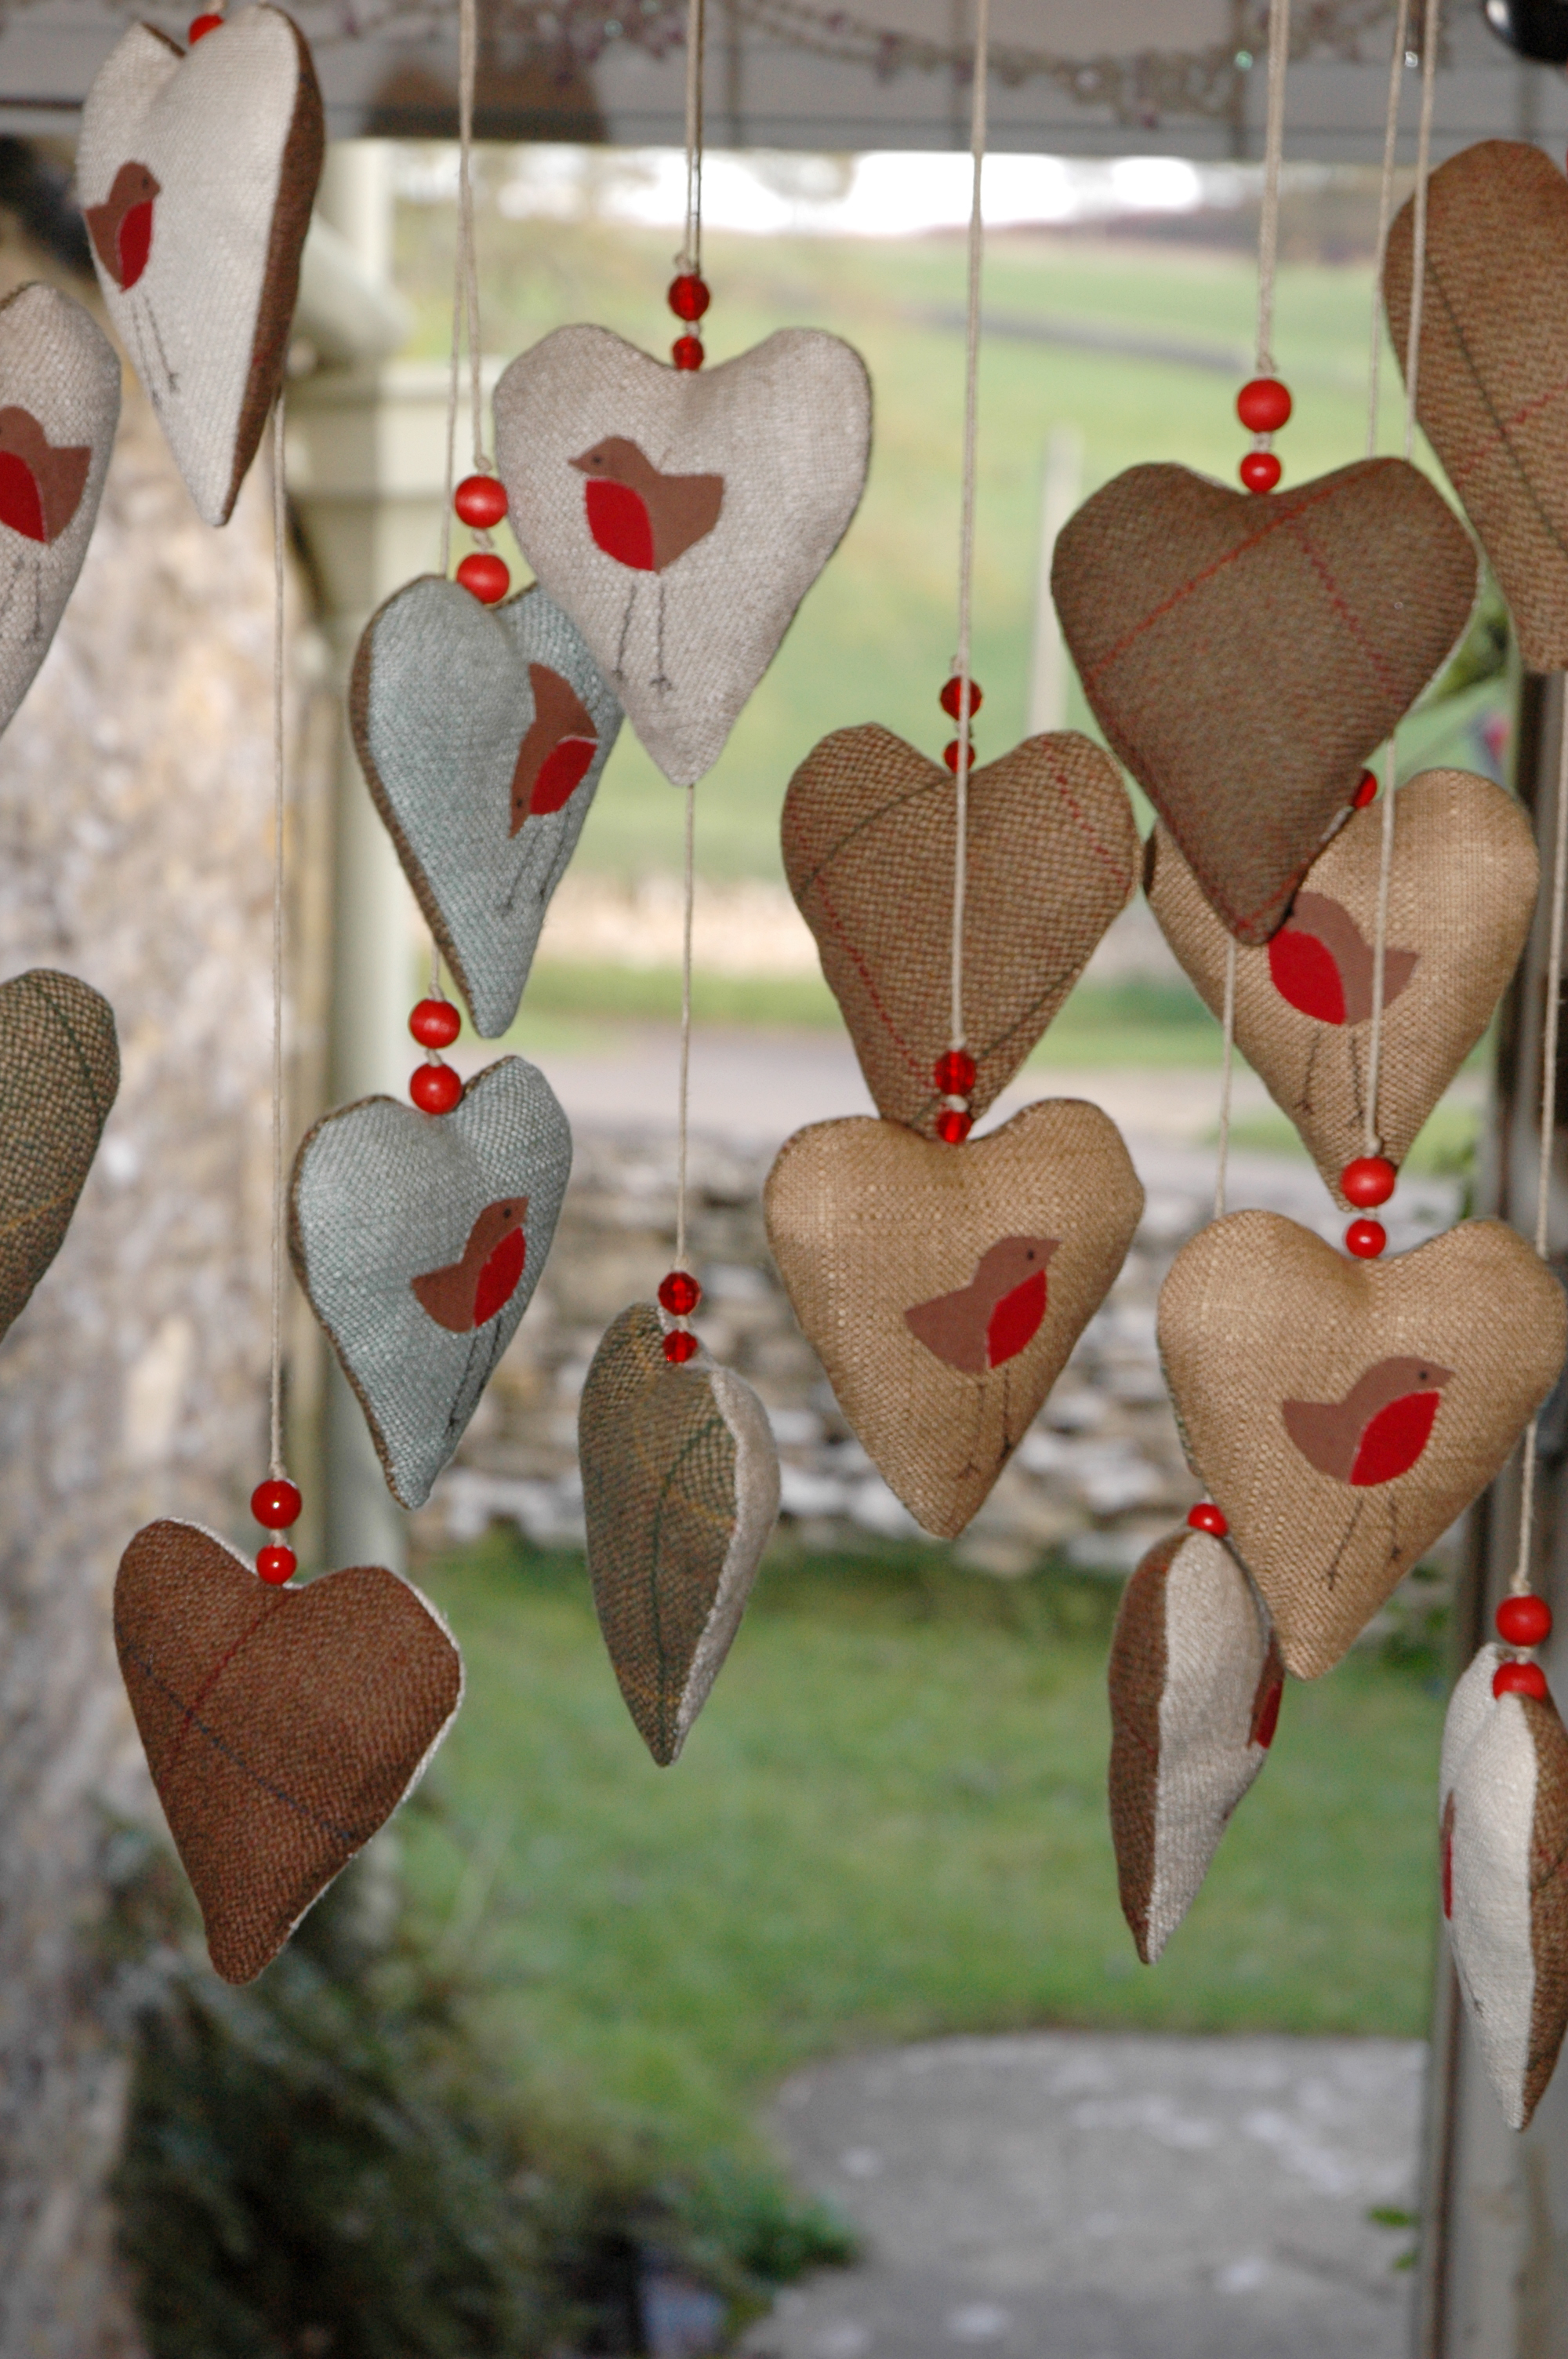 Handmade hanging hearts in the first studio of Laura Mirjami's.